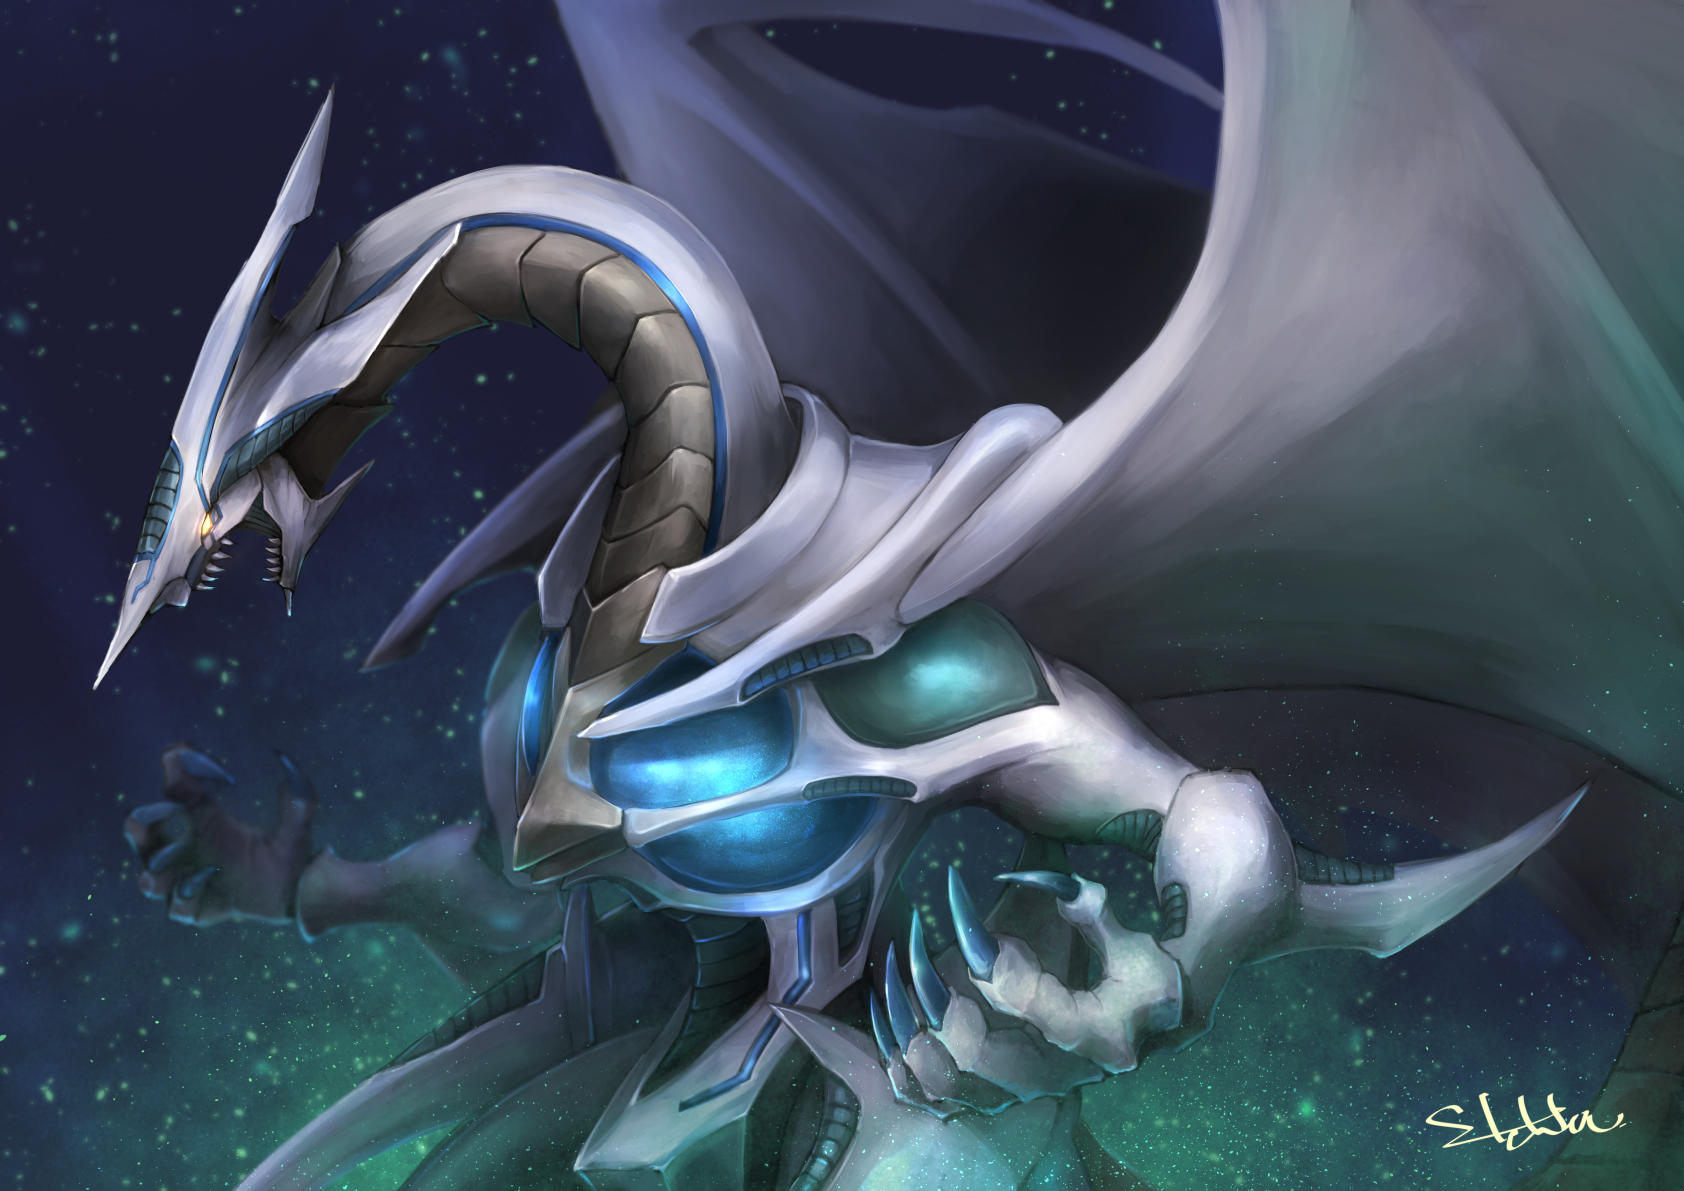 Yugioh 5ds Stardust Dragon Stardust Dragon/#20731...